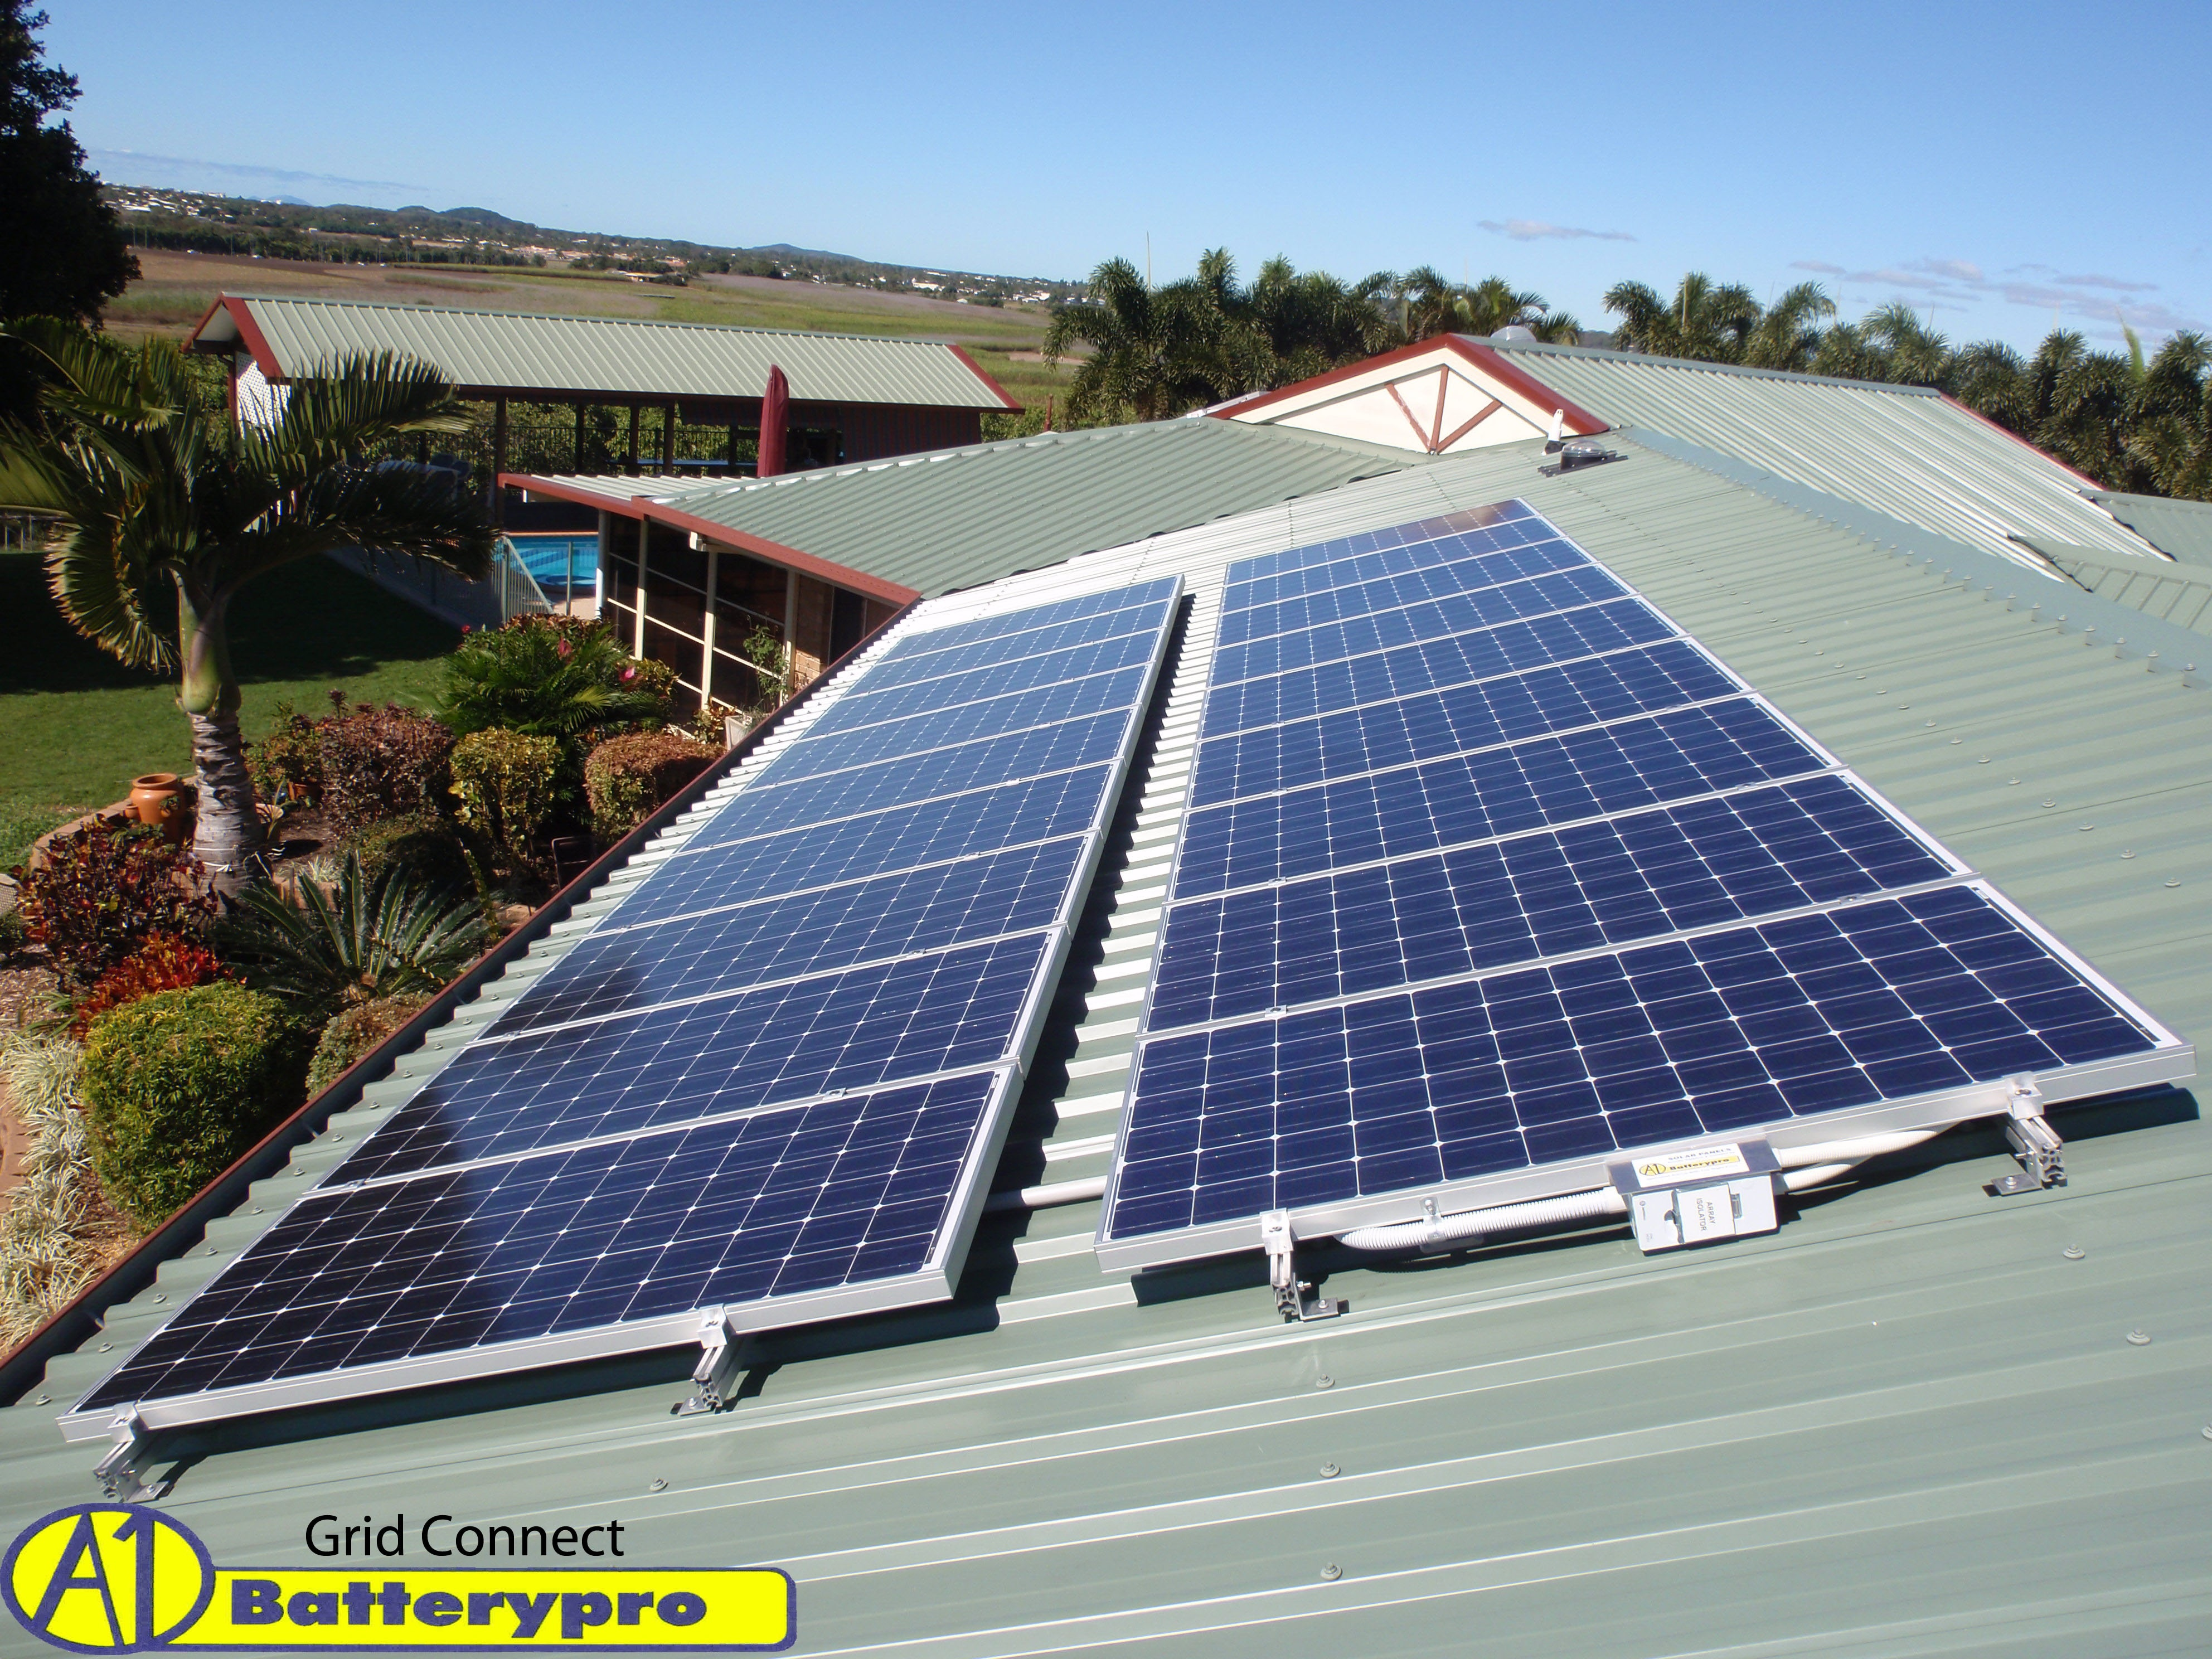 A1 Batterypro Solar Energy 7 Cemetery Rd West Mackay Panels To Batteries Via Regulator